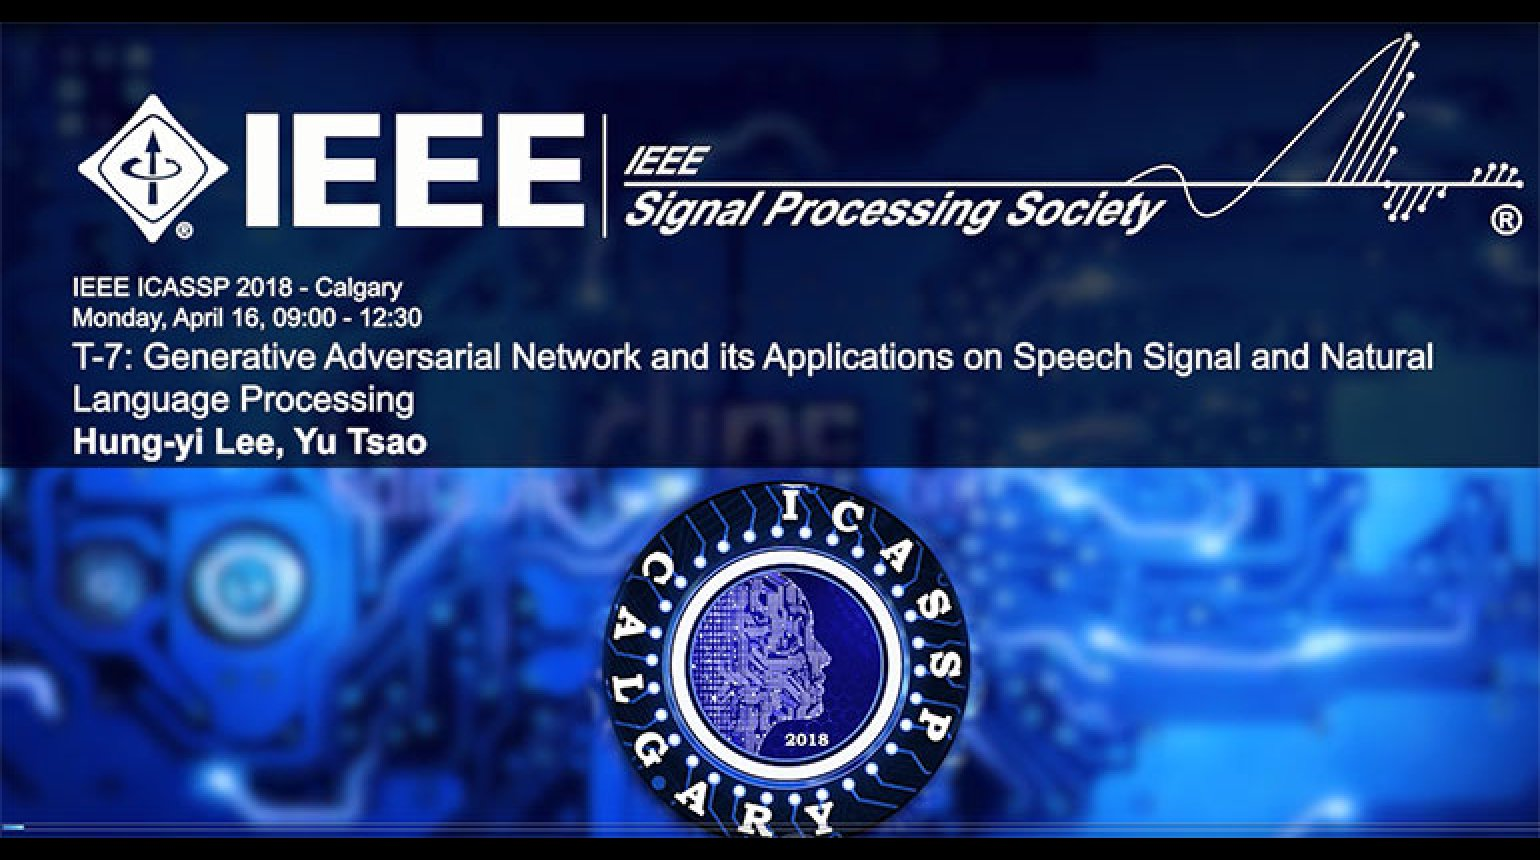 Tutorial 7 - Generative Adversarial Network and its Applications on Speech Signal and Natural Language Processing